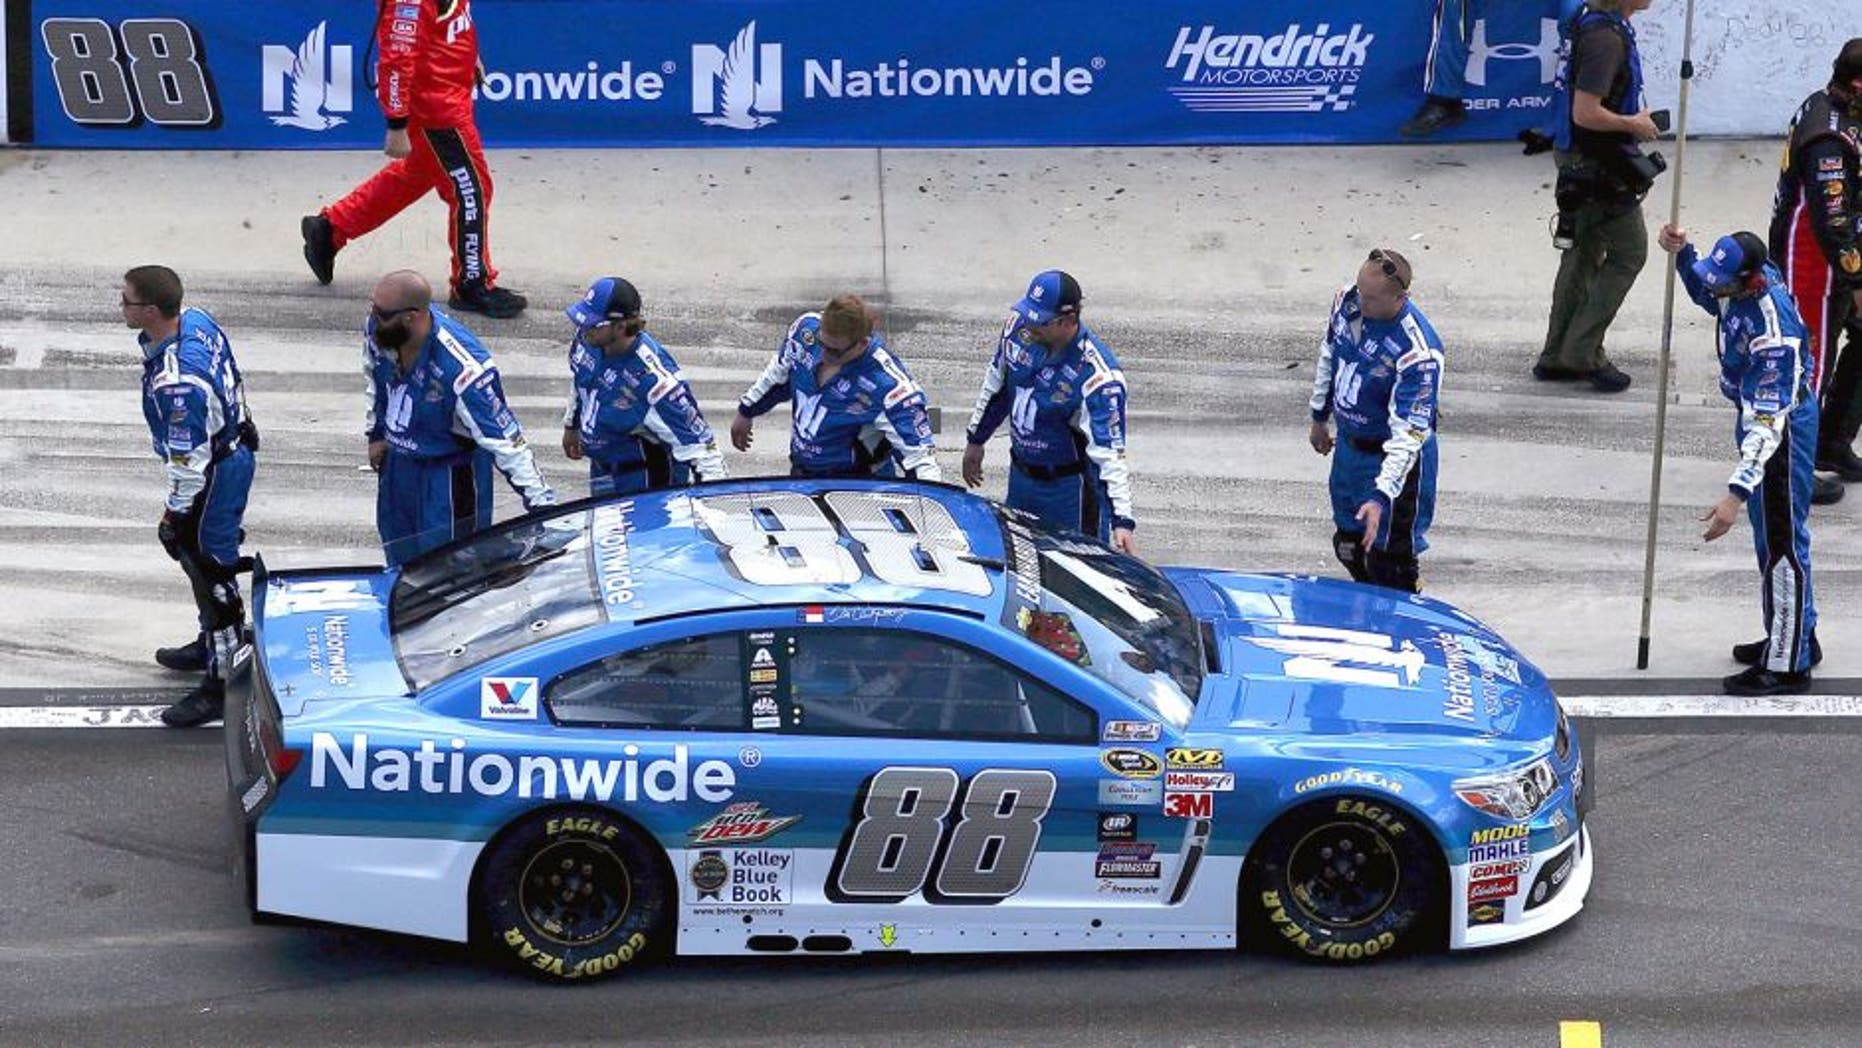 Dale Earnhardt Jr., driver of the #88 Nationwide Chevrolet, high-fives his crew on pit lane prior to the NASCAR Sprint Cup Series 57th Annual Daytona 500 at Daytona International Speedway on February 22, 2015 in Daytona Beach, Florida. (Photo by Sean Gardner/Getty Images)